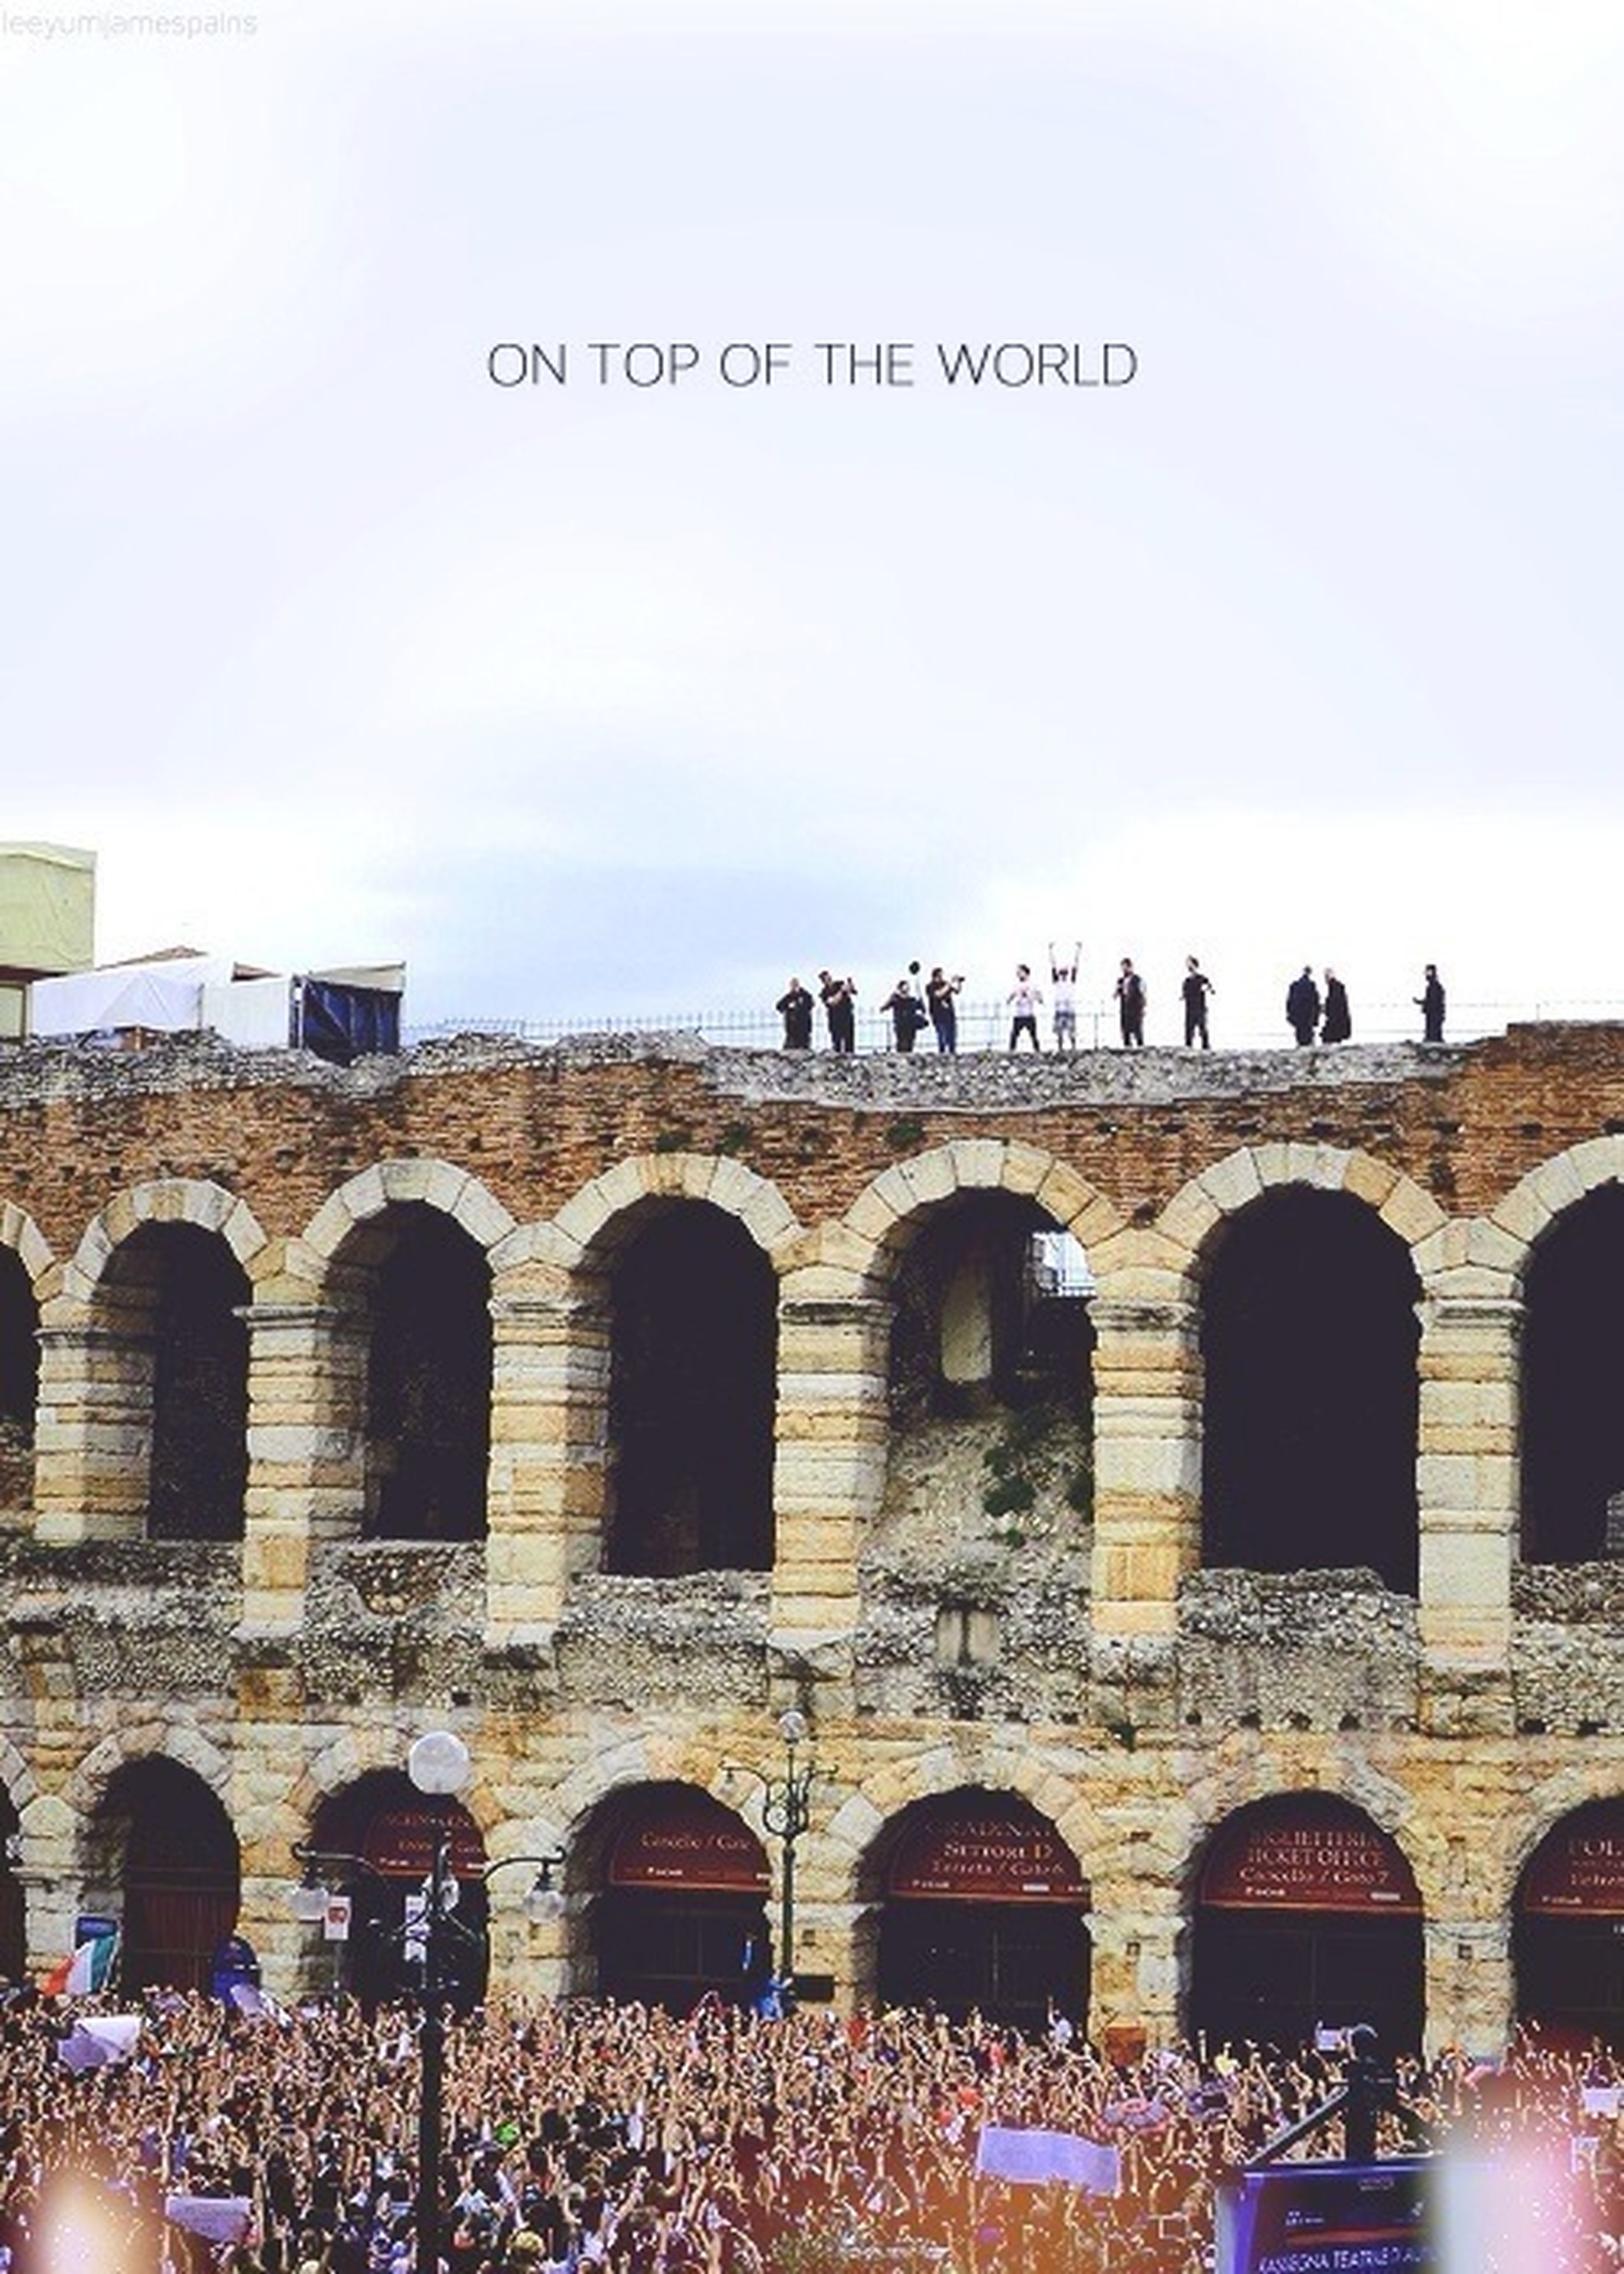 architecture, large group of people, built structure, clear sky, text, building exterior, arch, copy space, men, person, lifestyles, side by side, western script, day, outdoors, leisure activity, history, in a row, tourism